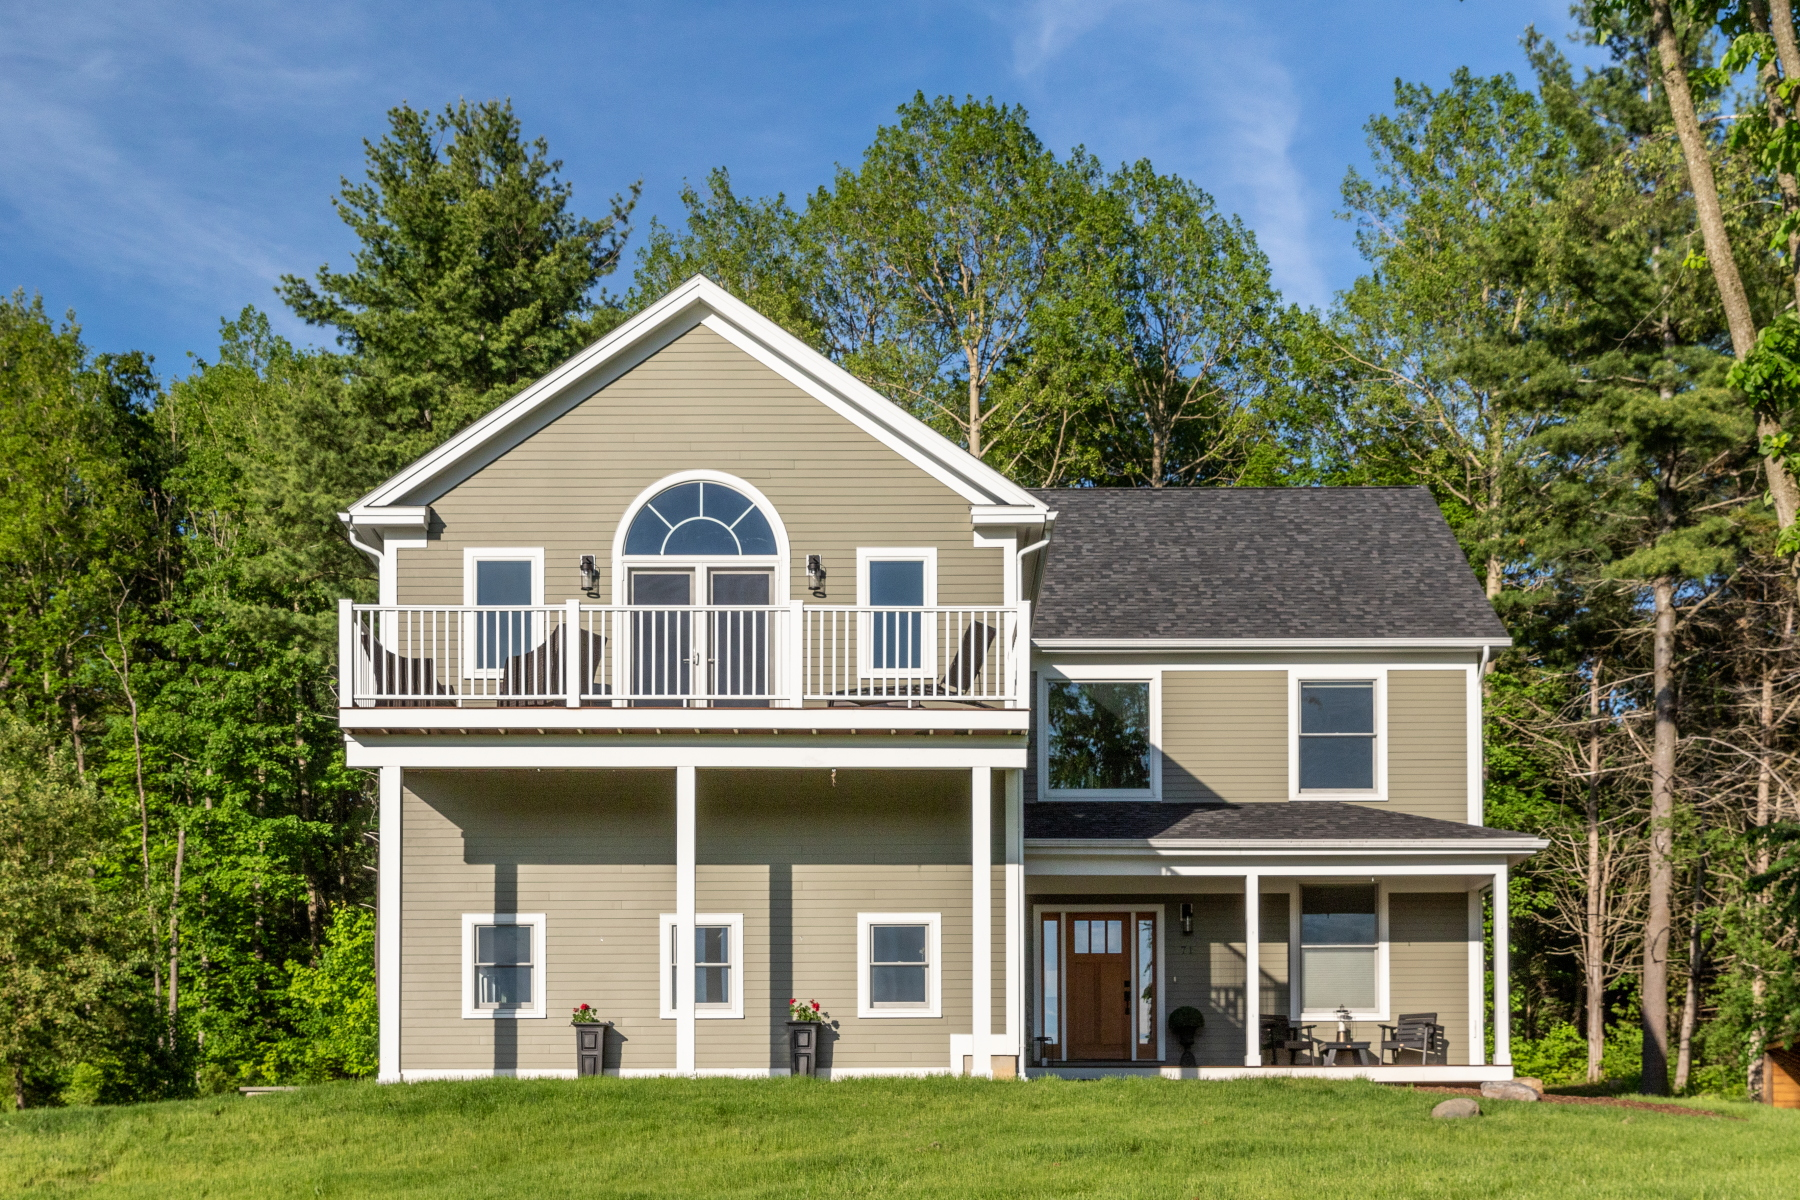 Single Family Homes for Sale at 71 Lilly Creek Lane, Shelburne 71 Lilly Creek Ln Shelburne, Vermont 05482 United States